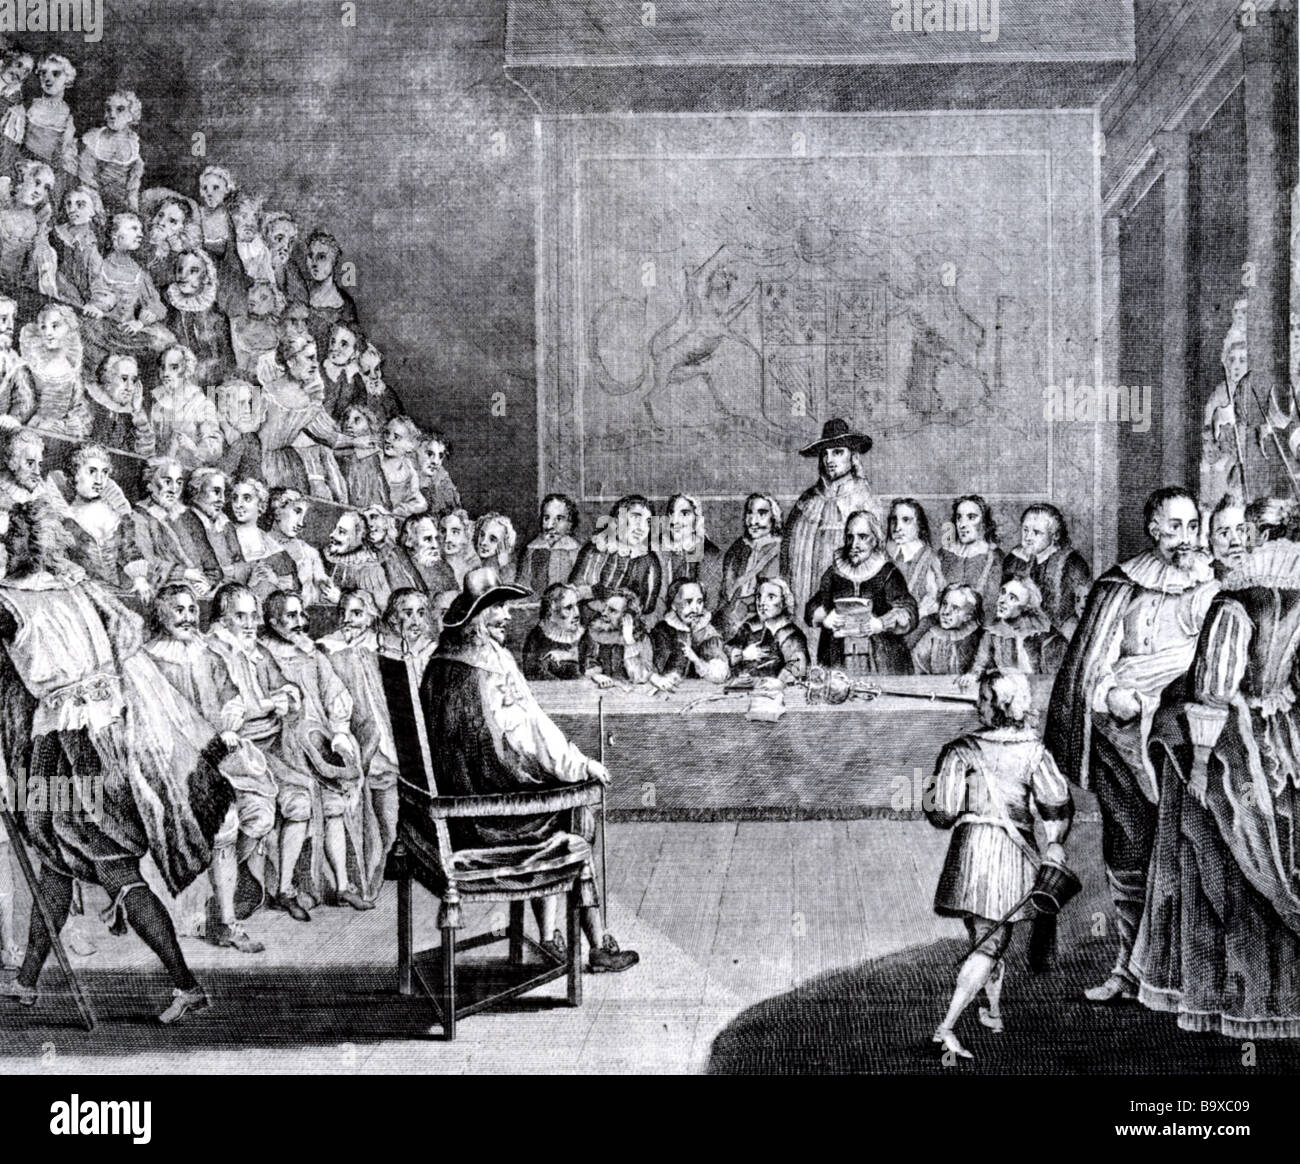 TRIAL OF KING CHARLES I on 4 January 1649 in the House of Commons - Stock Image